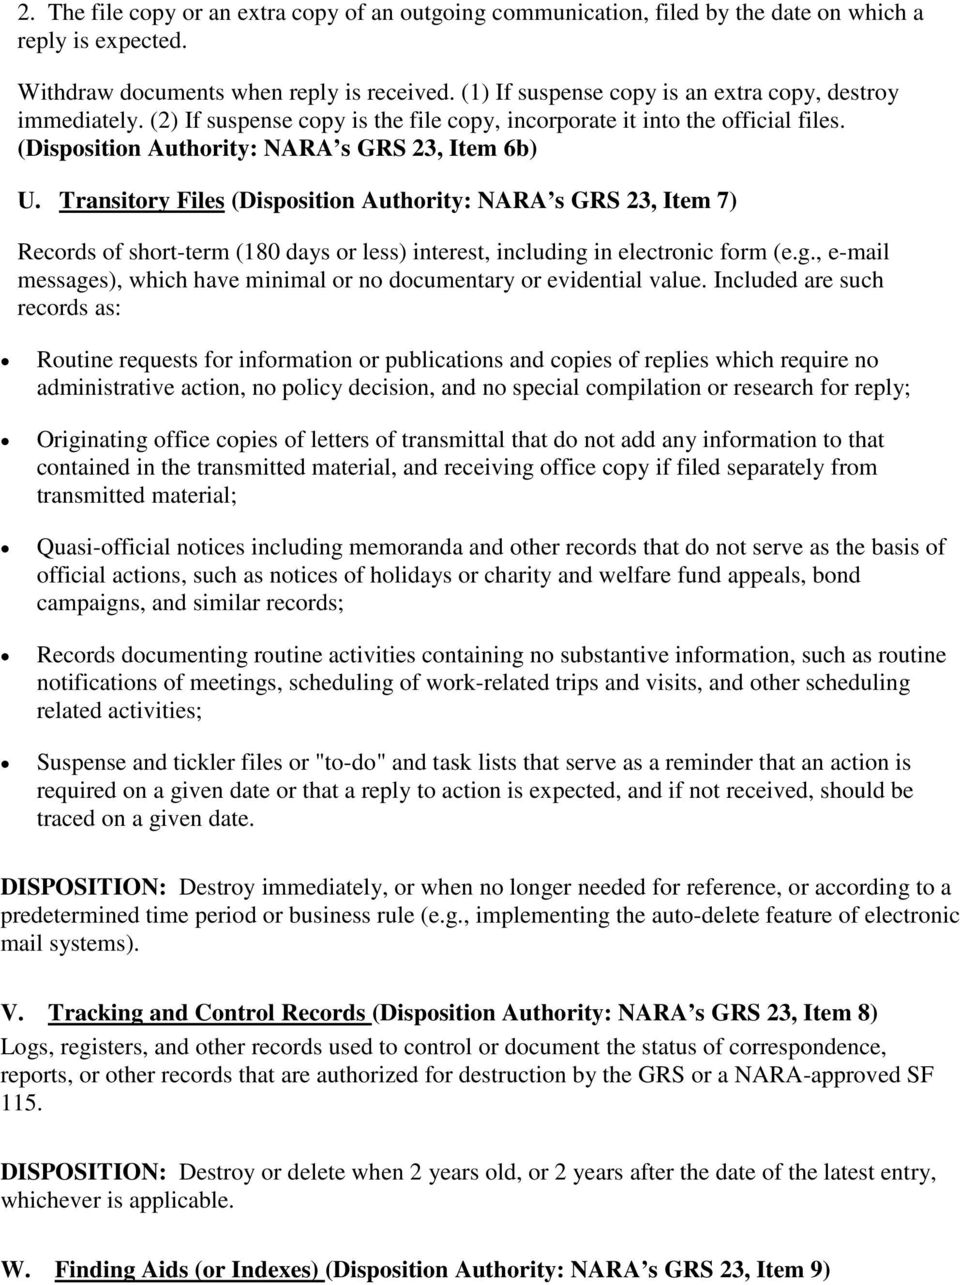 Transitory Files (Disposition Authority: NARA s GRS 23, Item 7) Records of short-term (180 days or less) interest, including